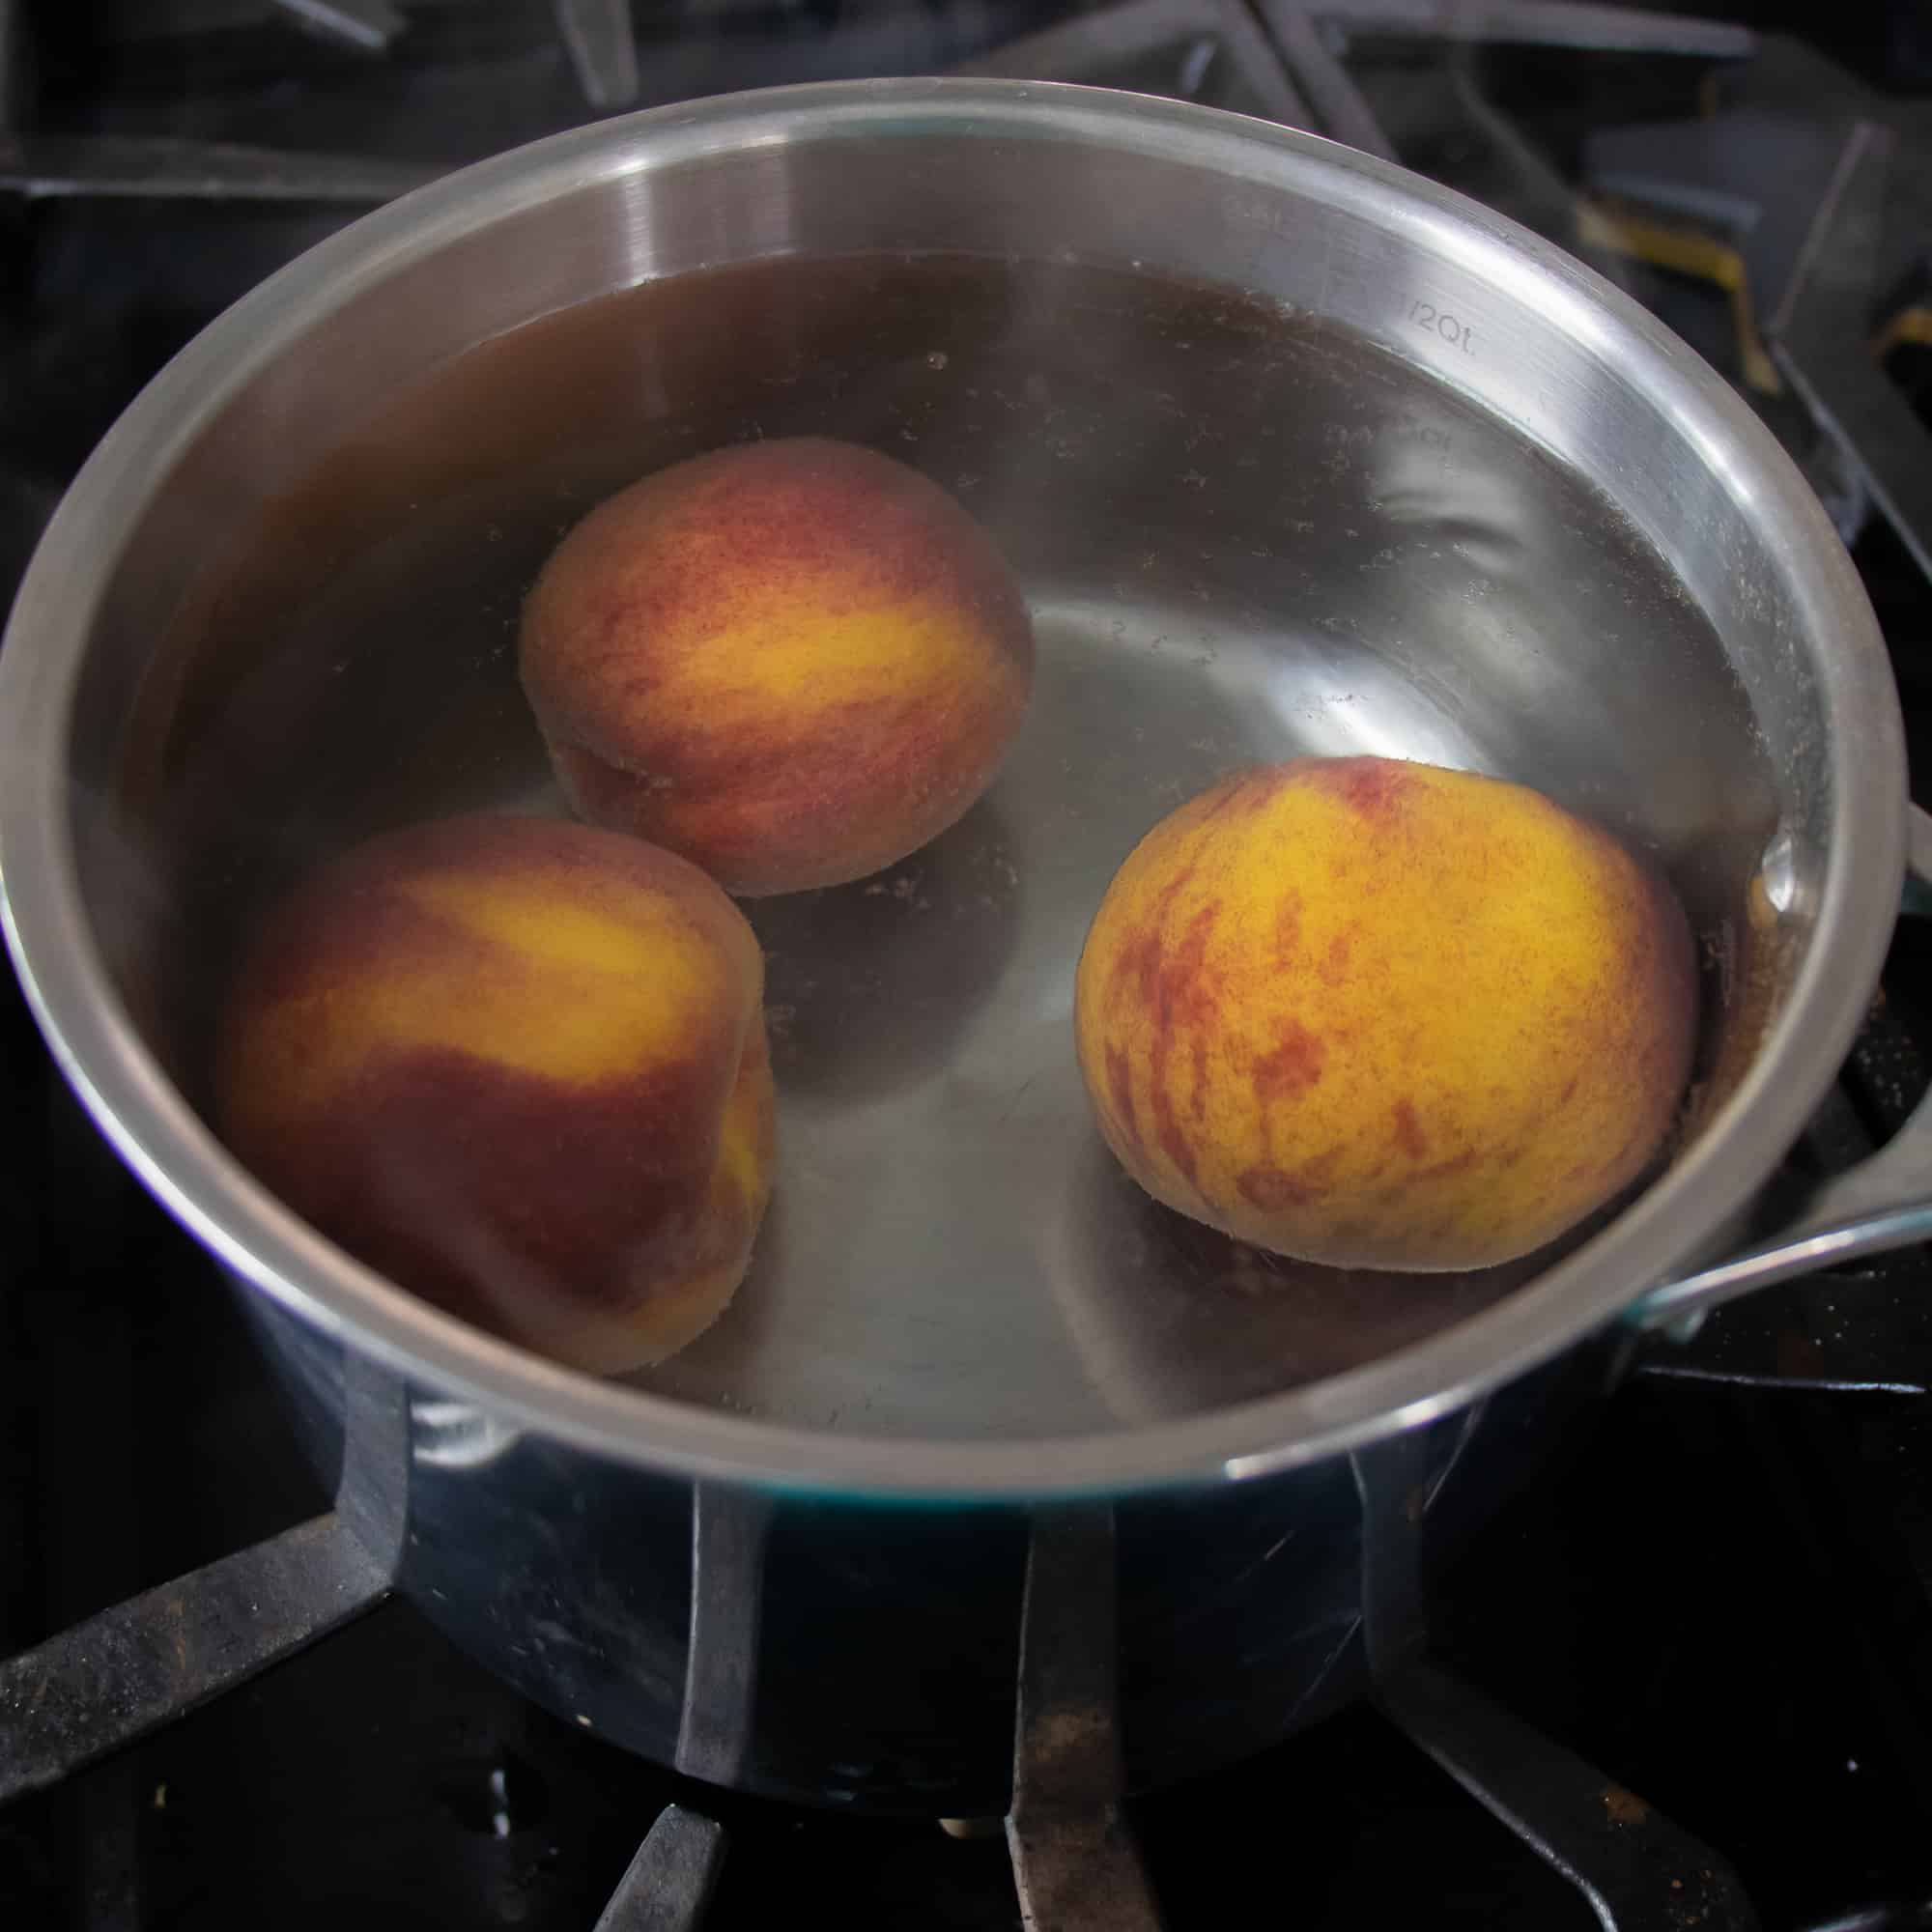 Drop the peaches in hot water to blanch for one minute